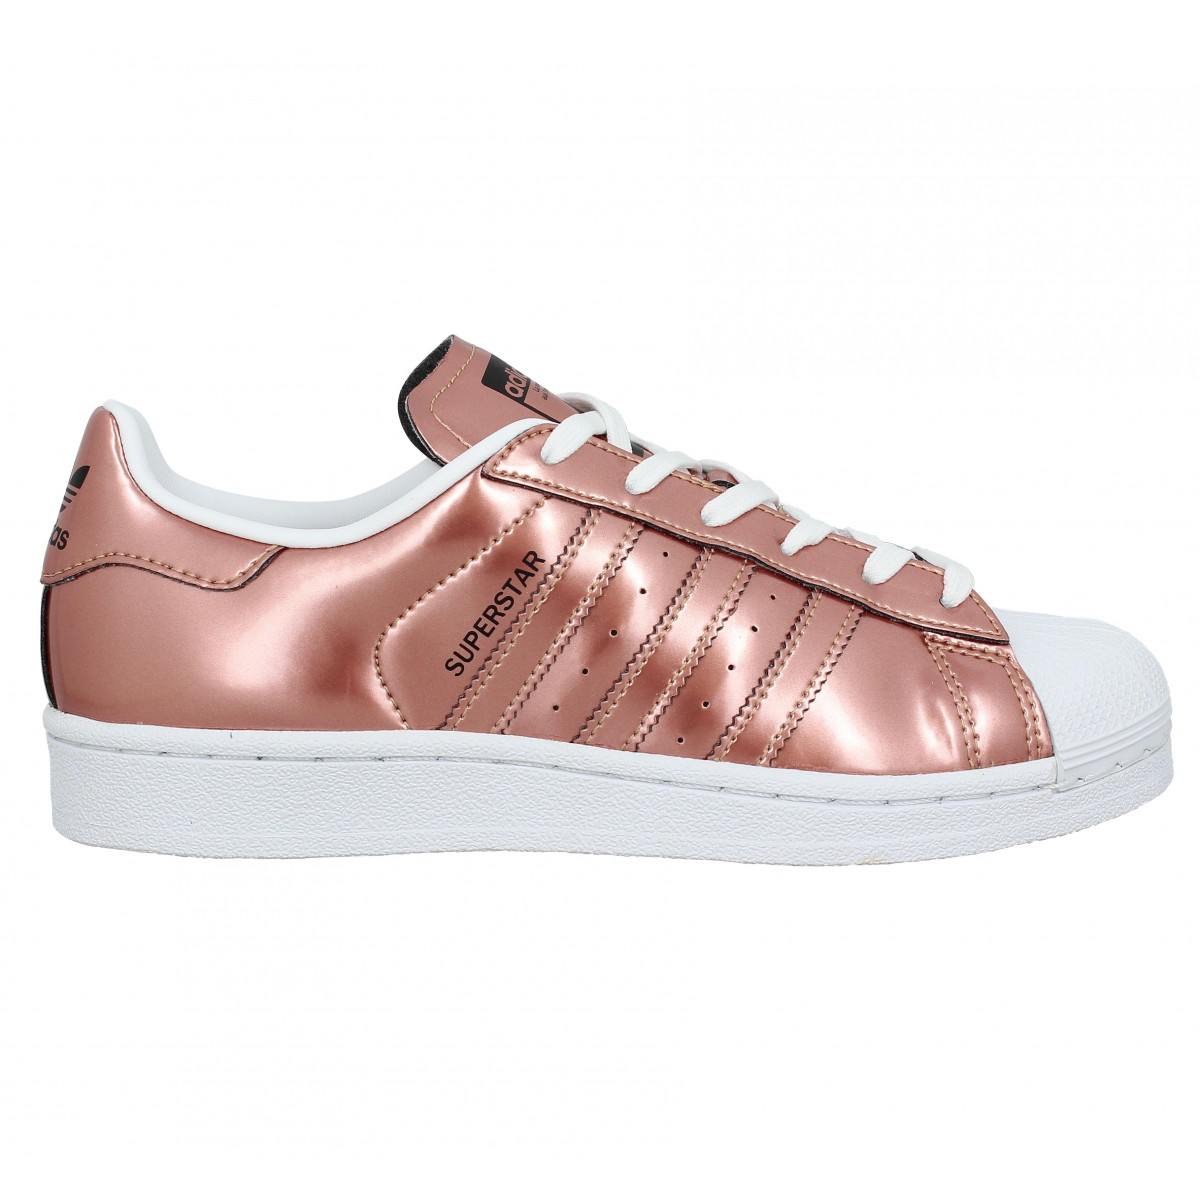 superstar adidas femme rose gold. Black Bedroom Furniture Sets. Home Design Ideas